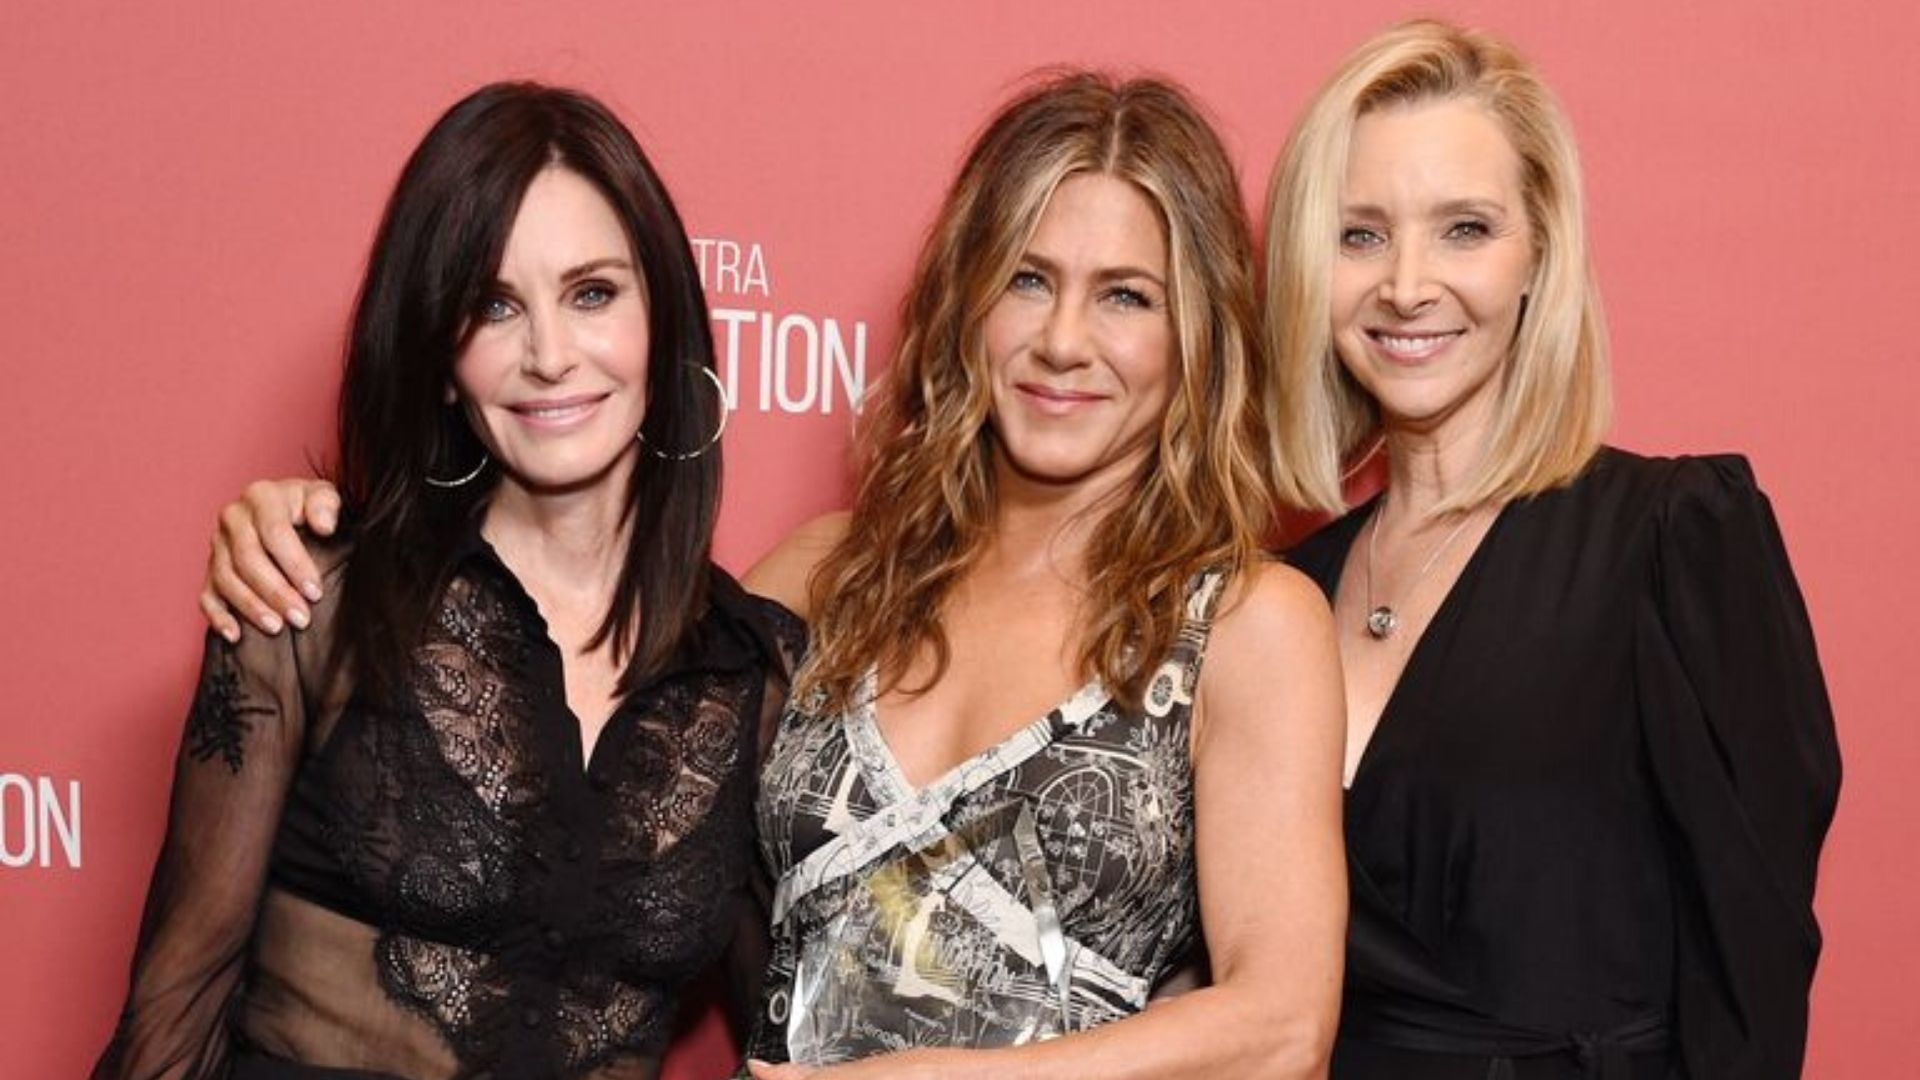 There Was A Mini 'Friends' Reunion On The Red Carpet And Our Hearts Can't Deal